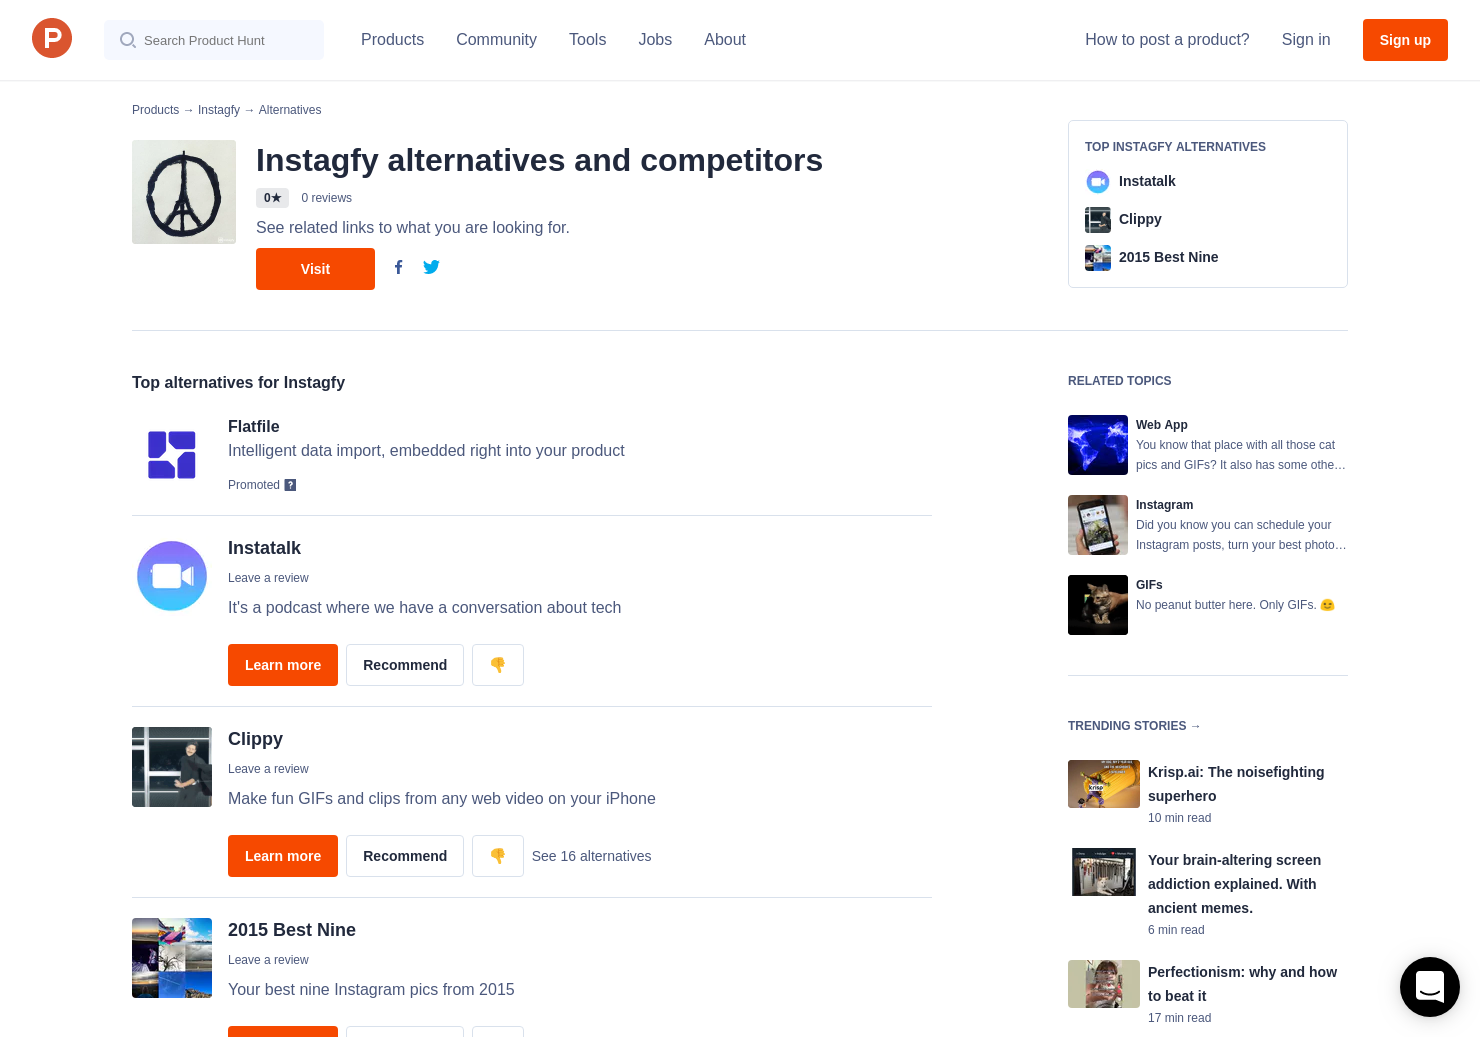 7 Alternatives to Instagfy | Product Hunt